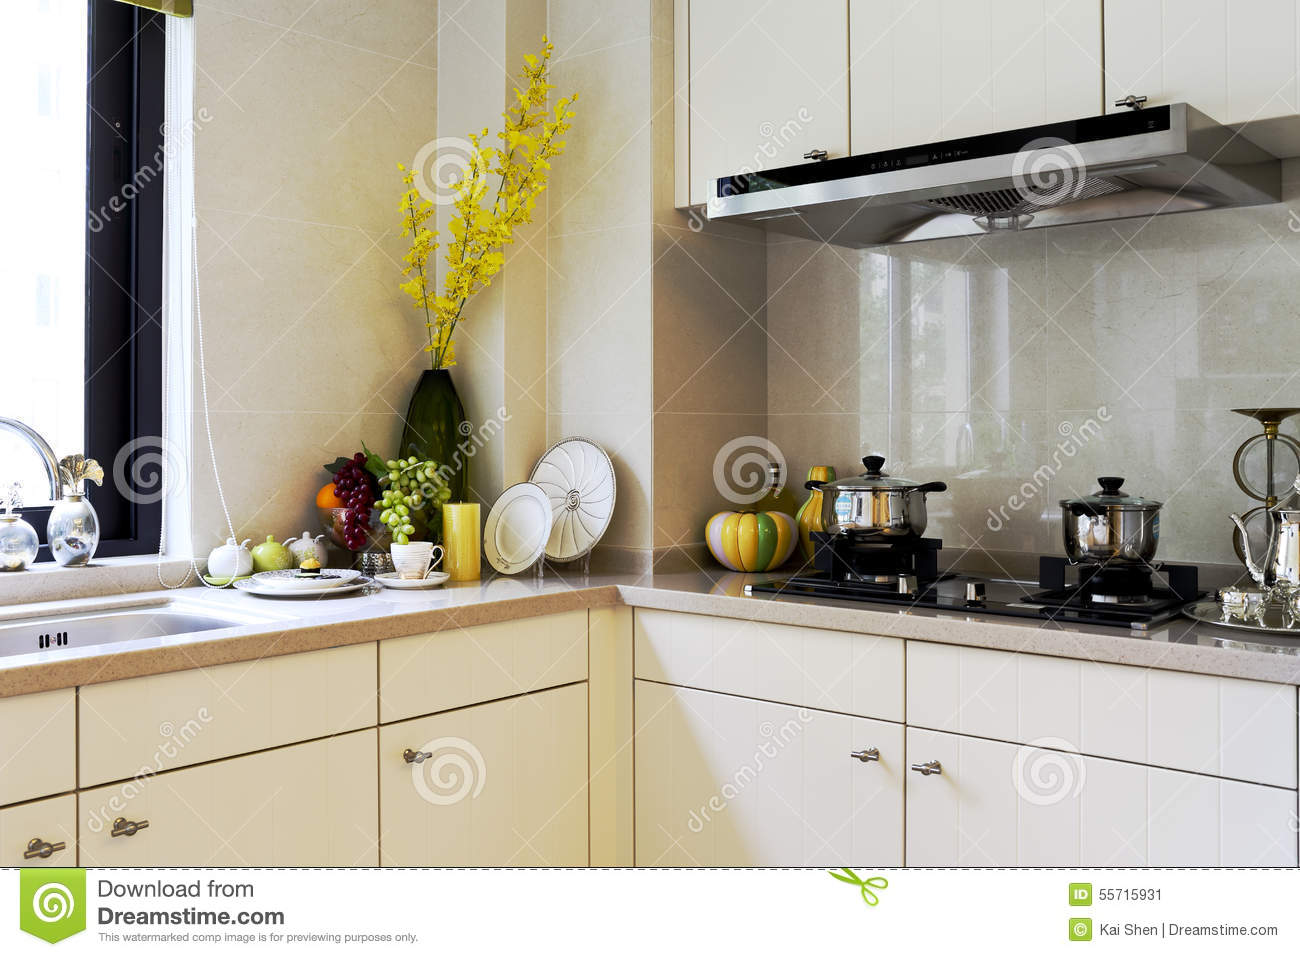 The kitchen of example room